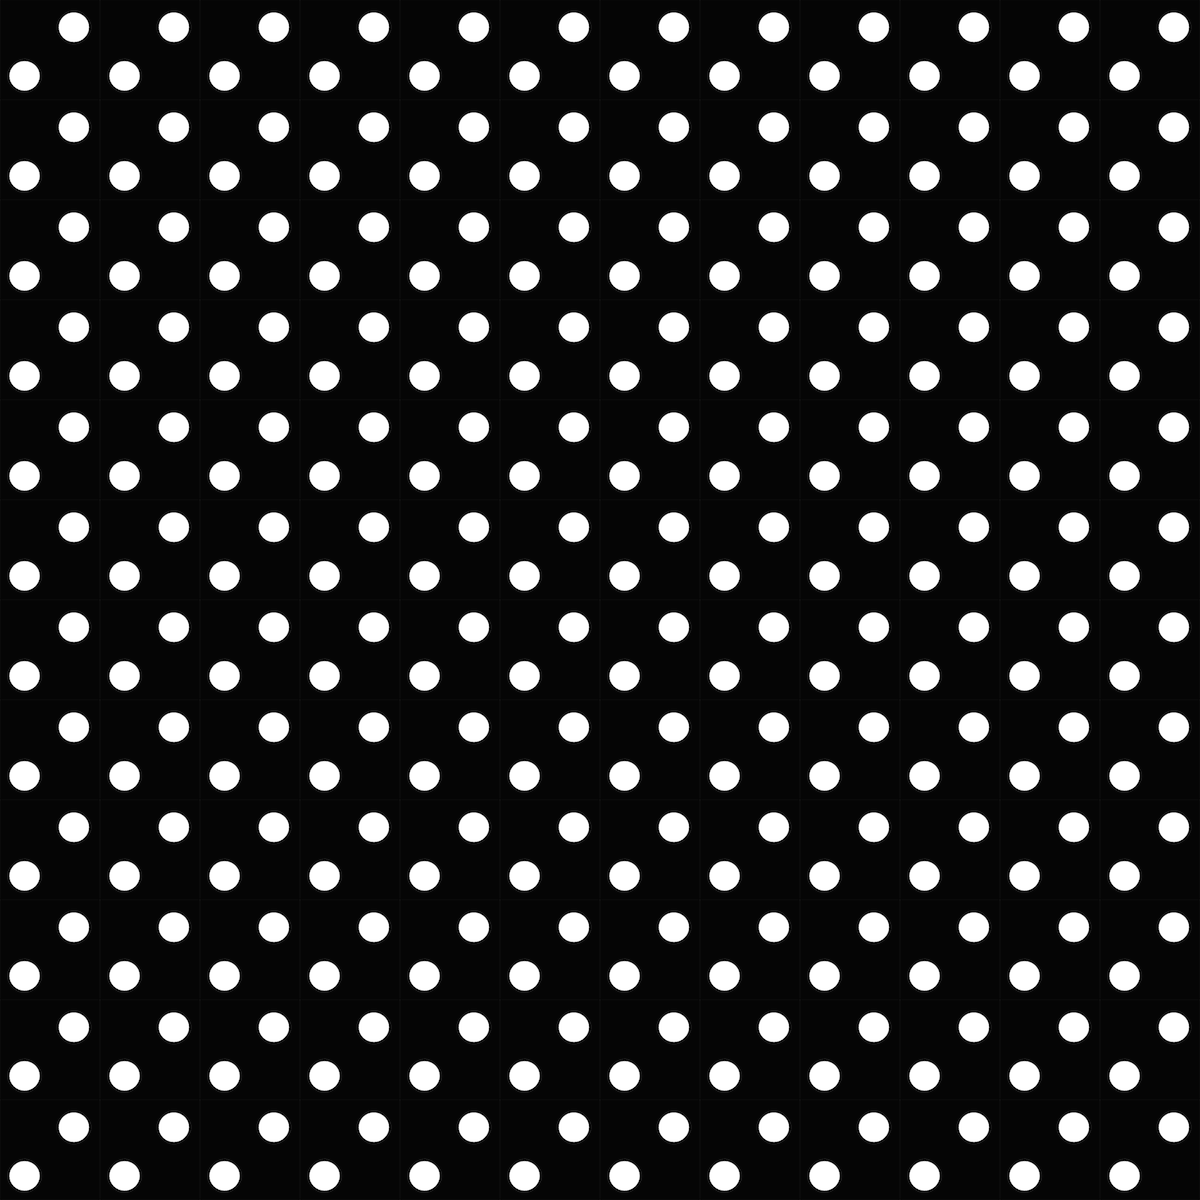 Black and white polka dot pattern - photo#1